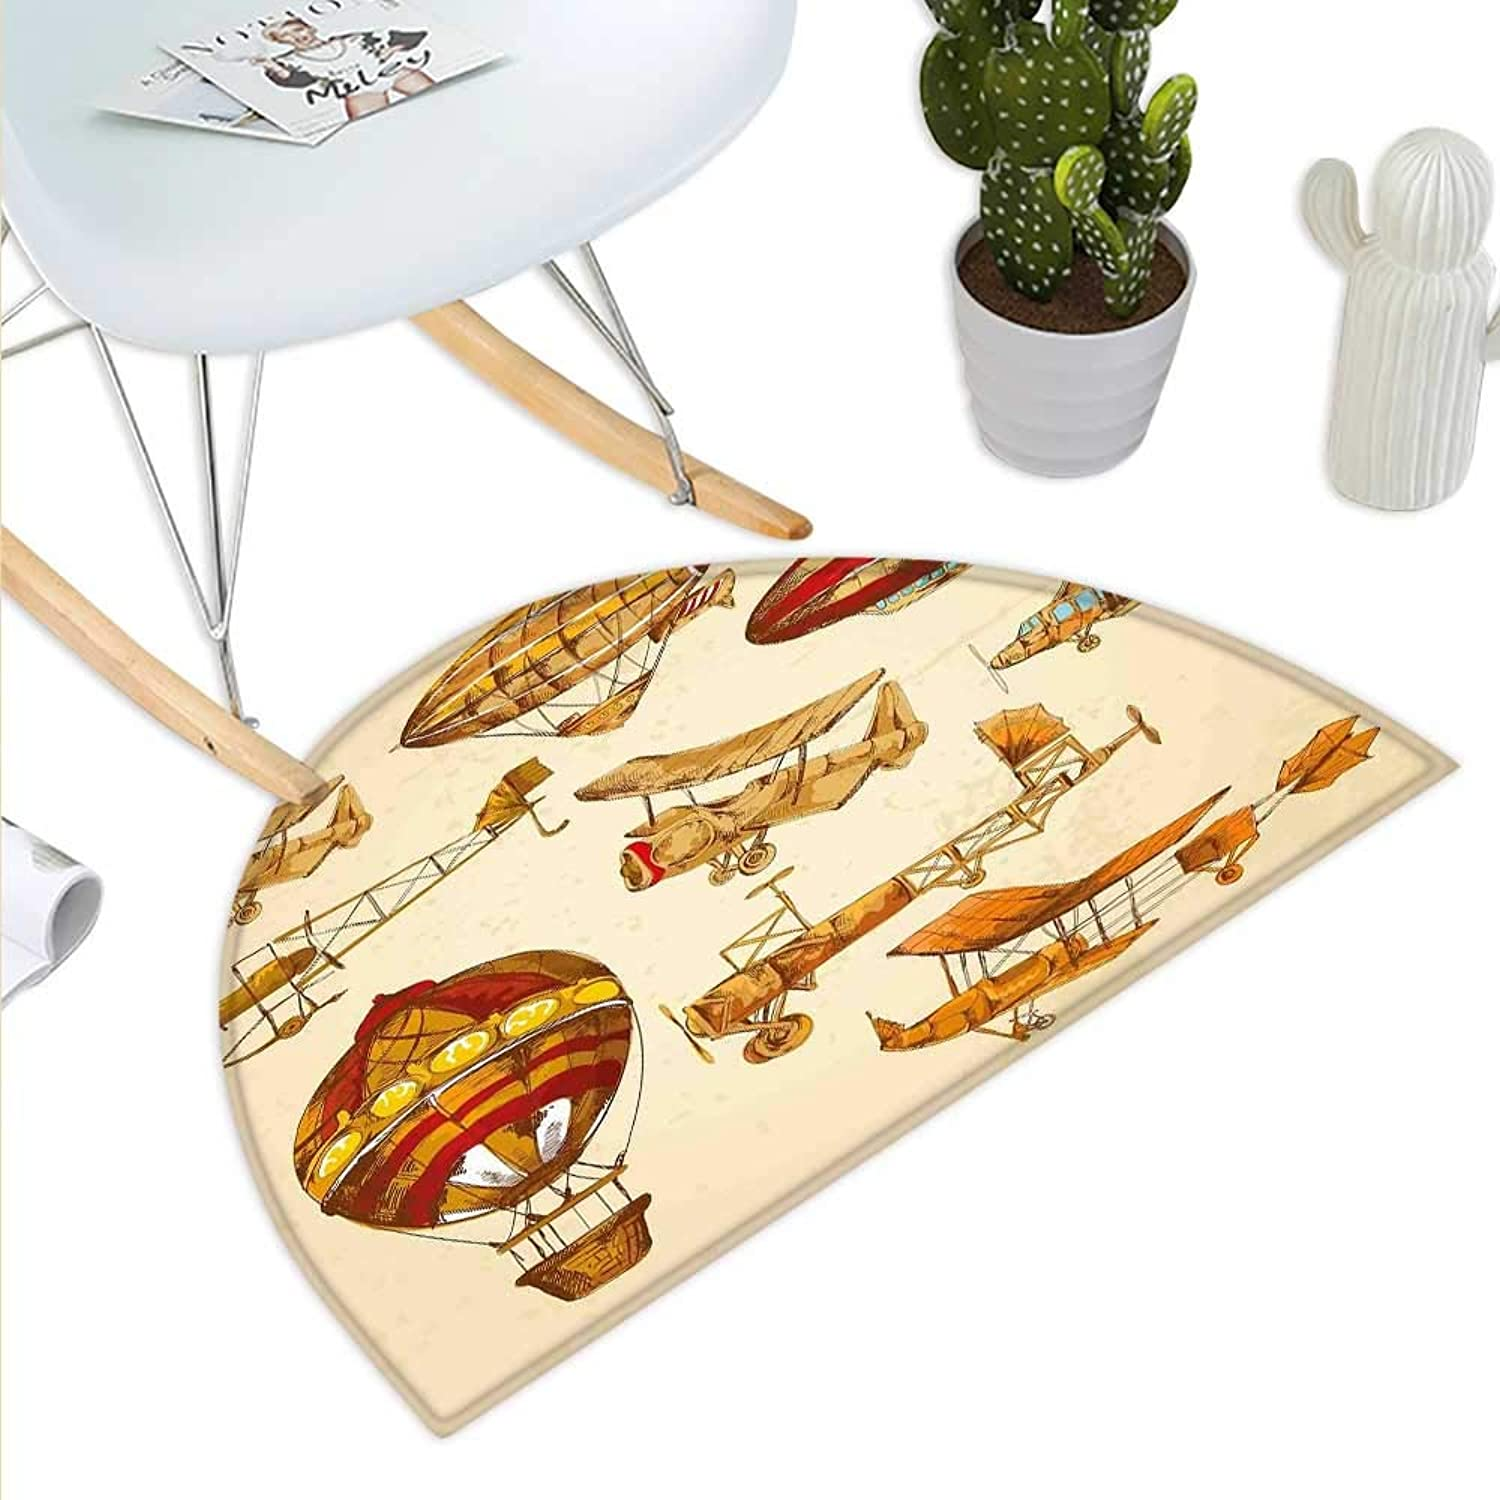 Aviation Semicircle Doormat Vintage Old Flying Objects Hot Baloons Planes Parachutes Print Halfmoon doormats H 35.4  xD 53.1  Sand Brown Apricot Mustard Red